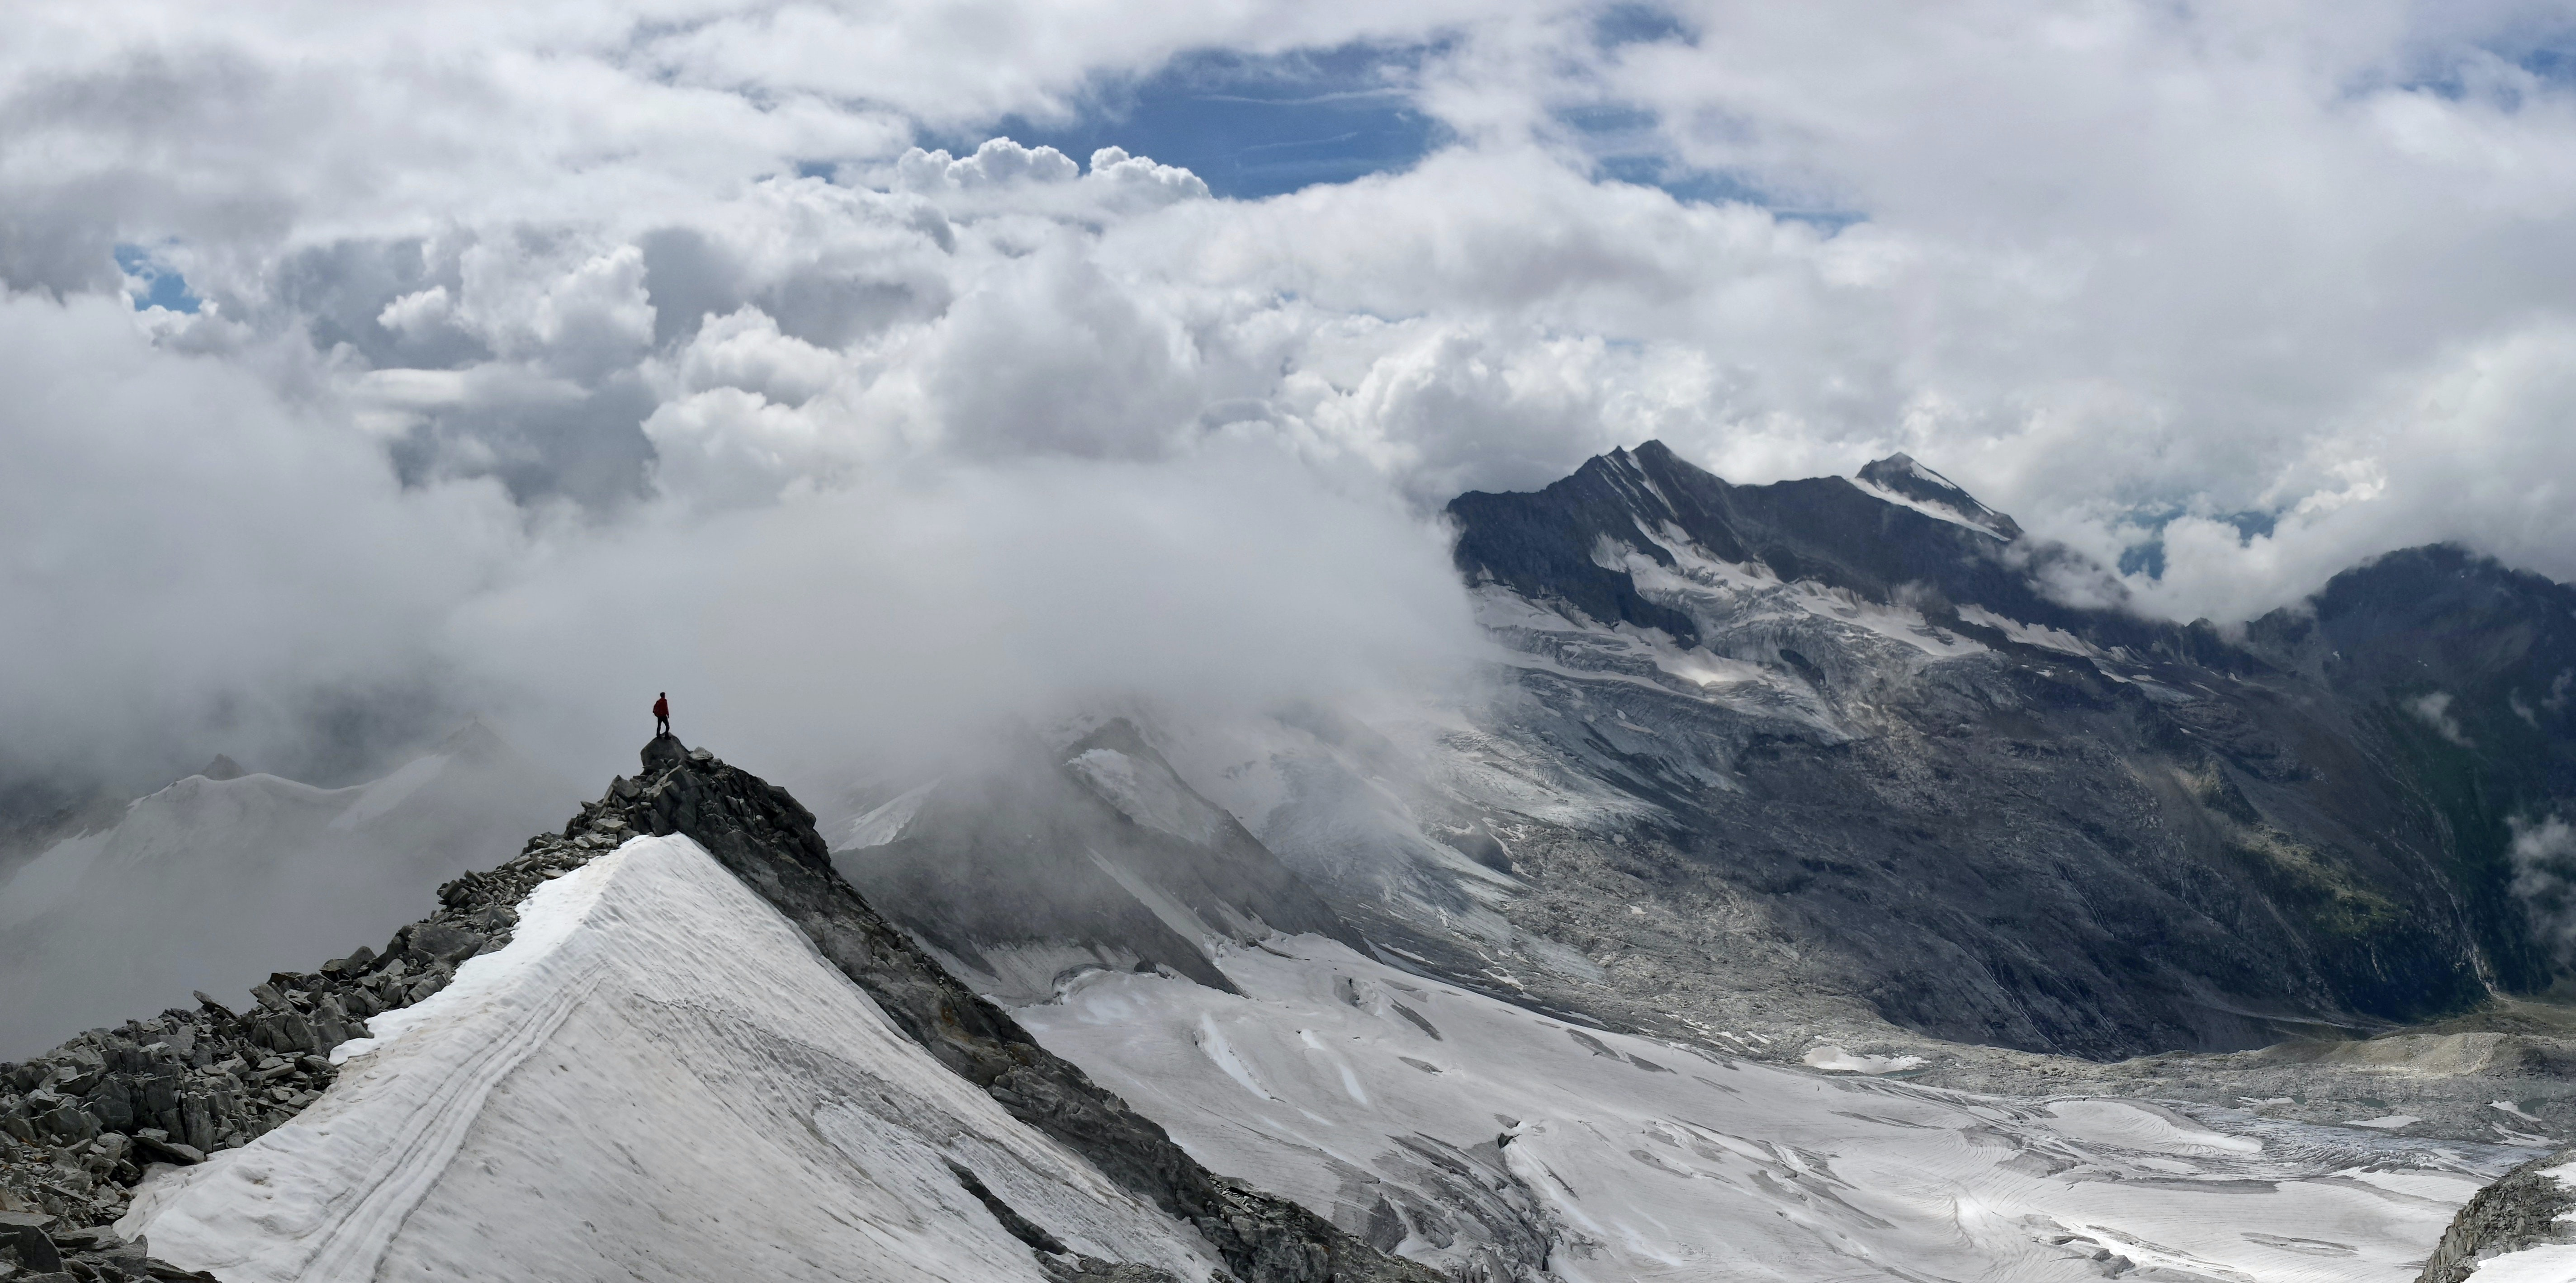 Clouds cover snowy mountains where hiker surveys the scene